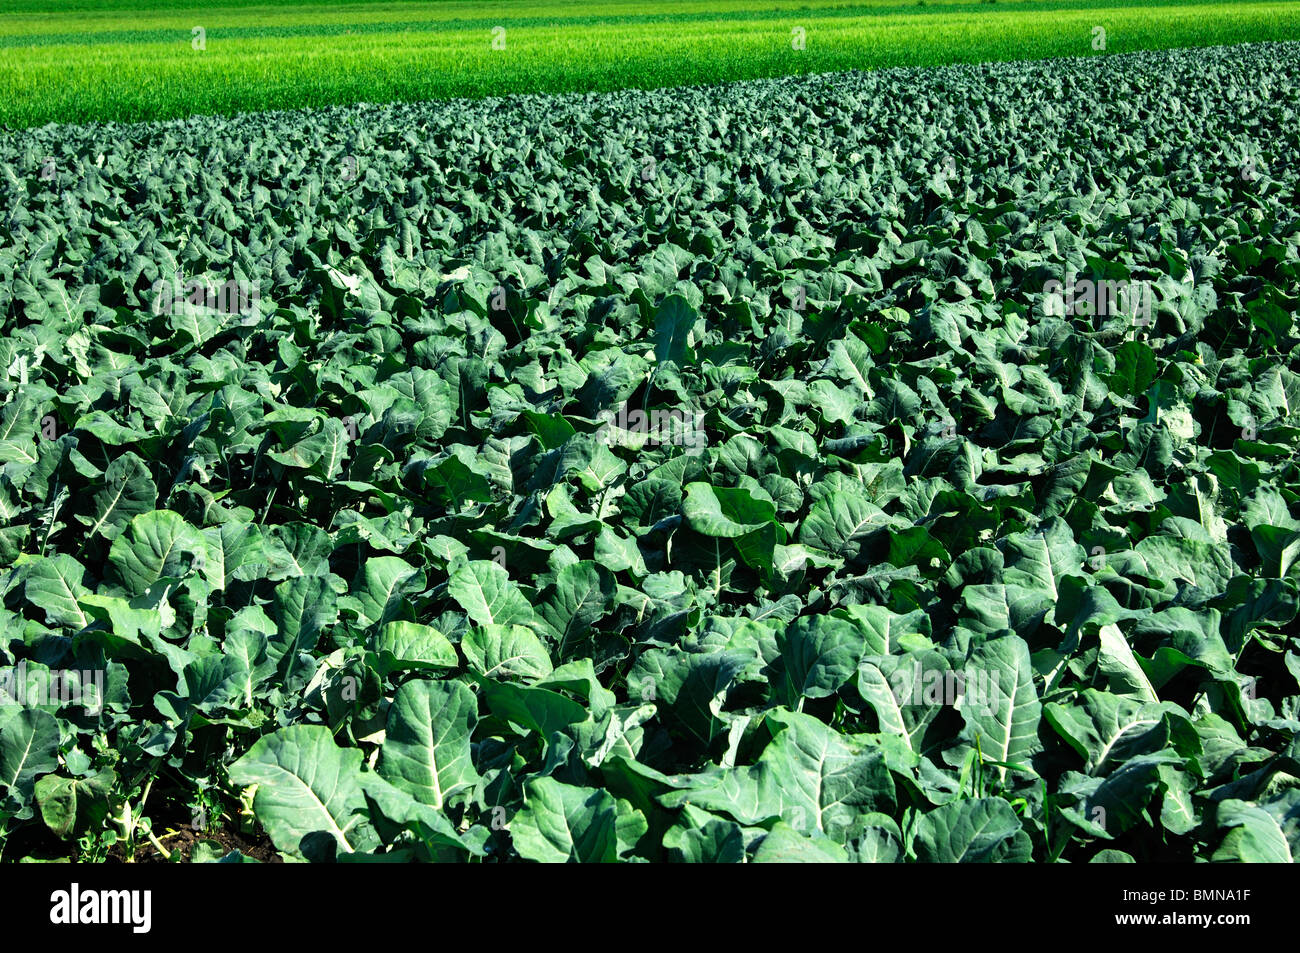 broccoli field stockfotos broccoli field bilder alamy. Black Bedroom Furniture Sets. Home Design Ideas